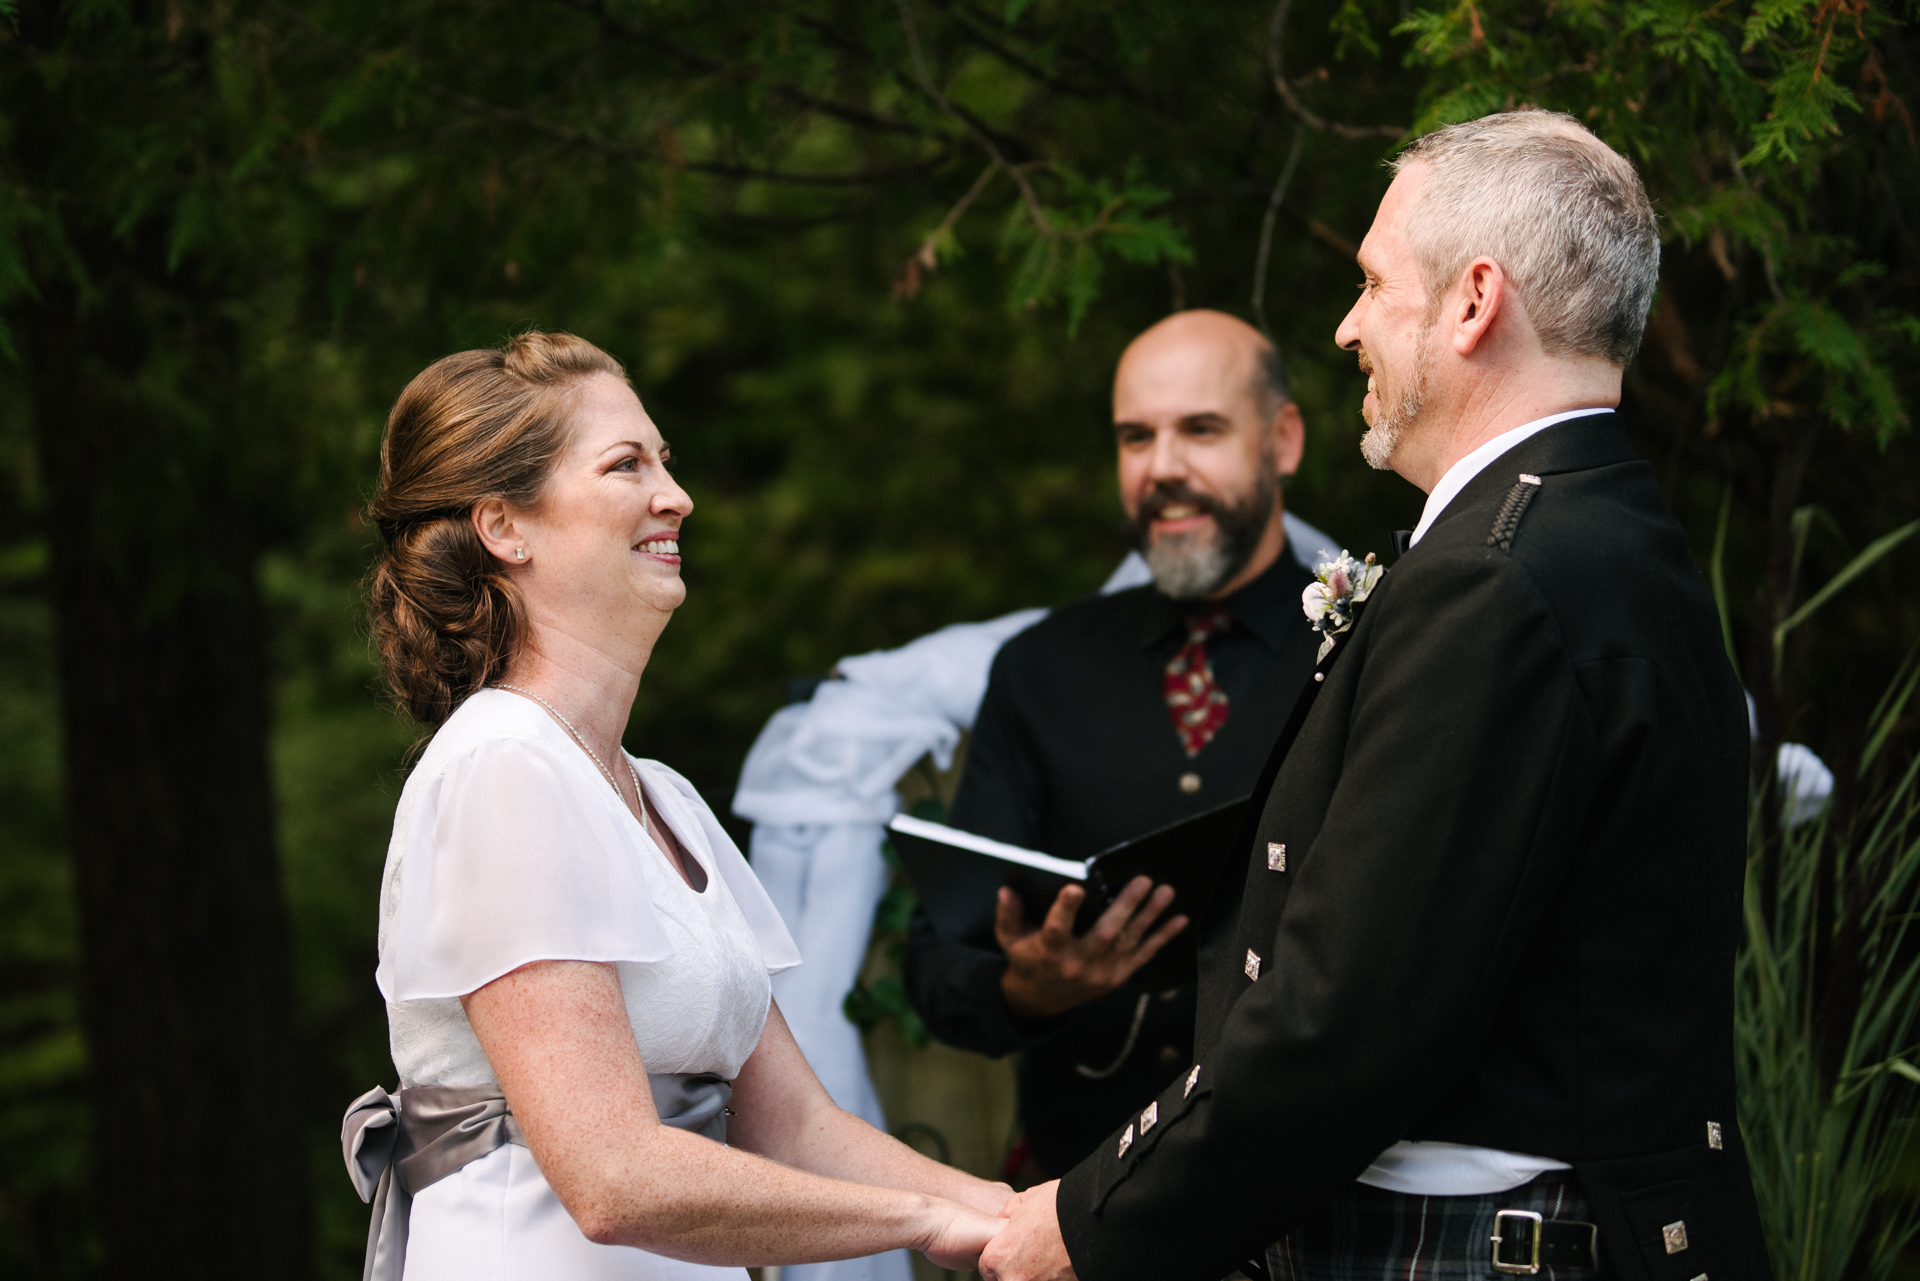 Kanata, Ottawa, Canada Outdoor Wedding Pics | The ceremony was in the backyard, in the shade of mature trees